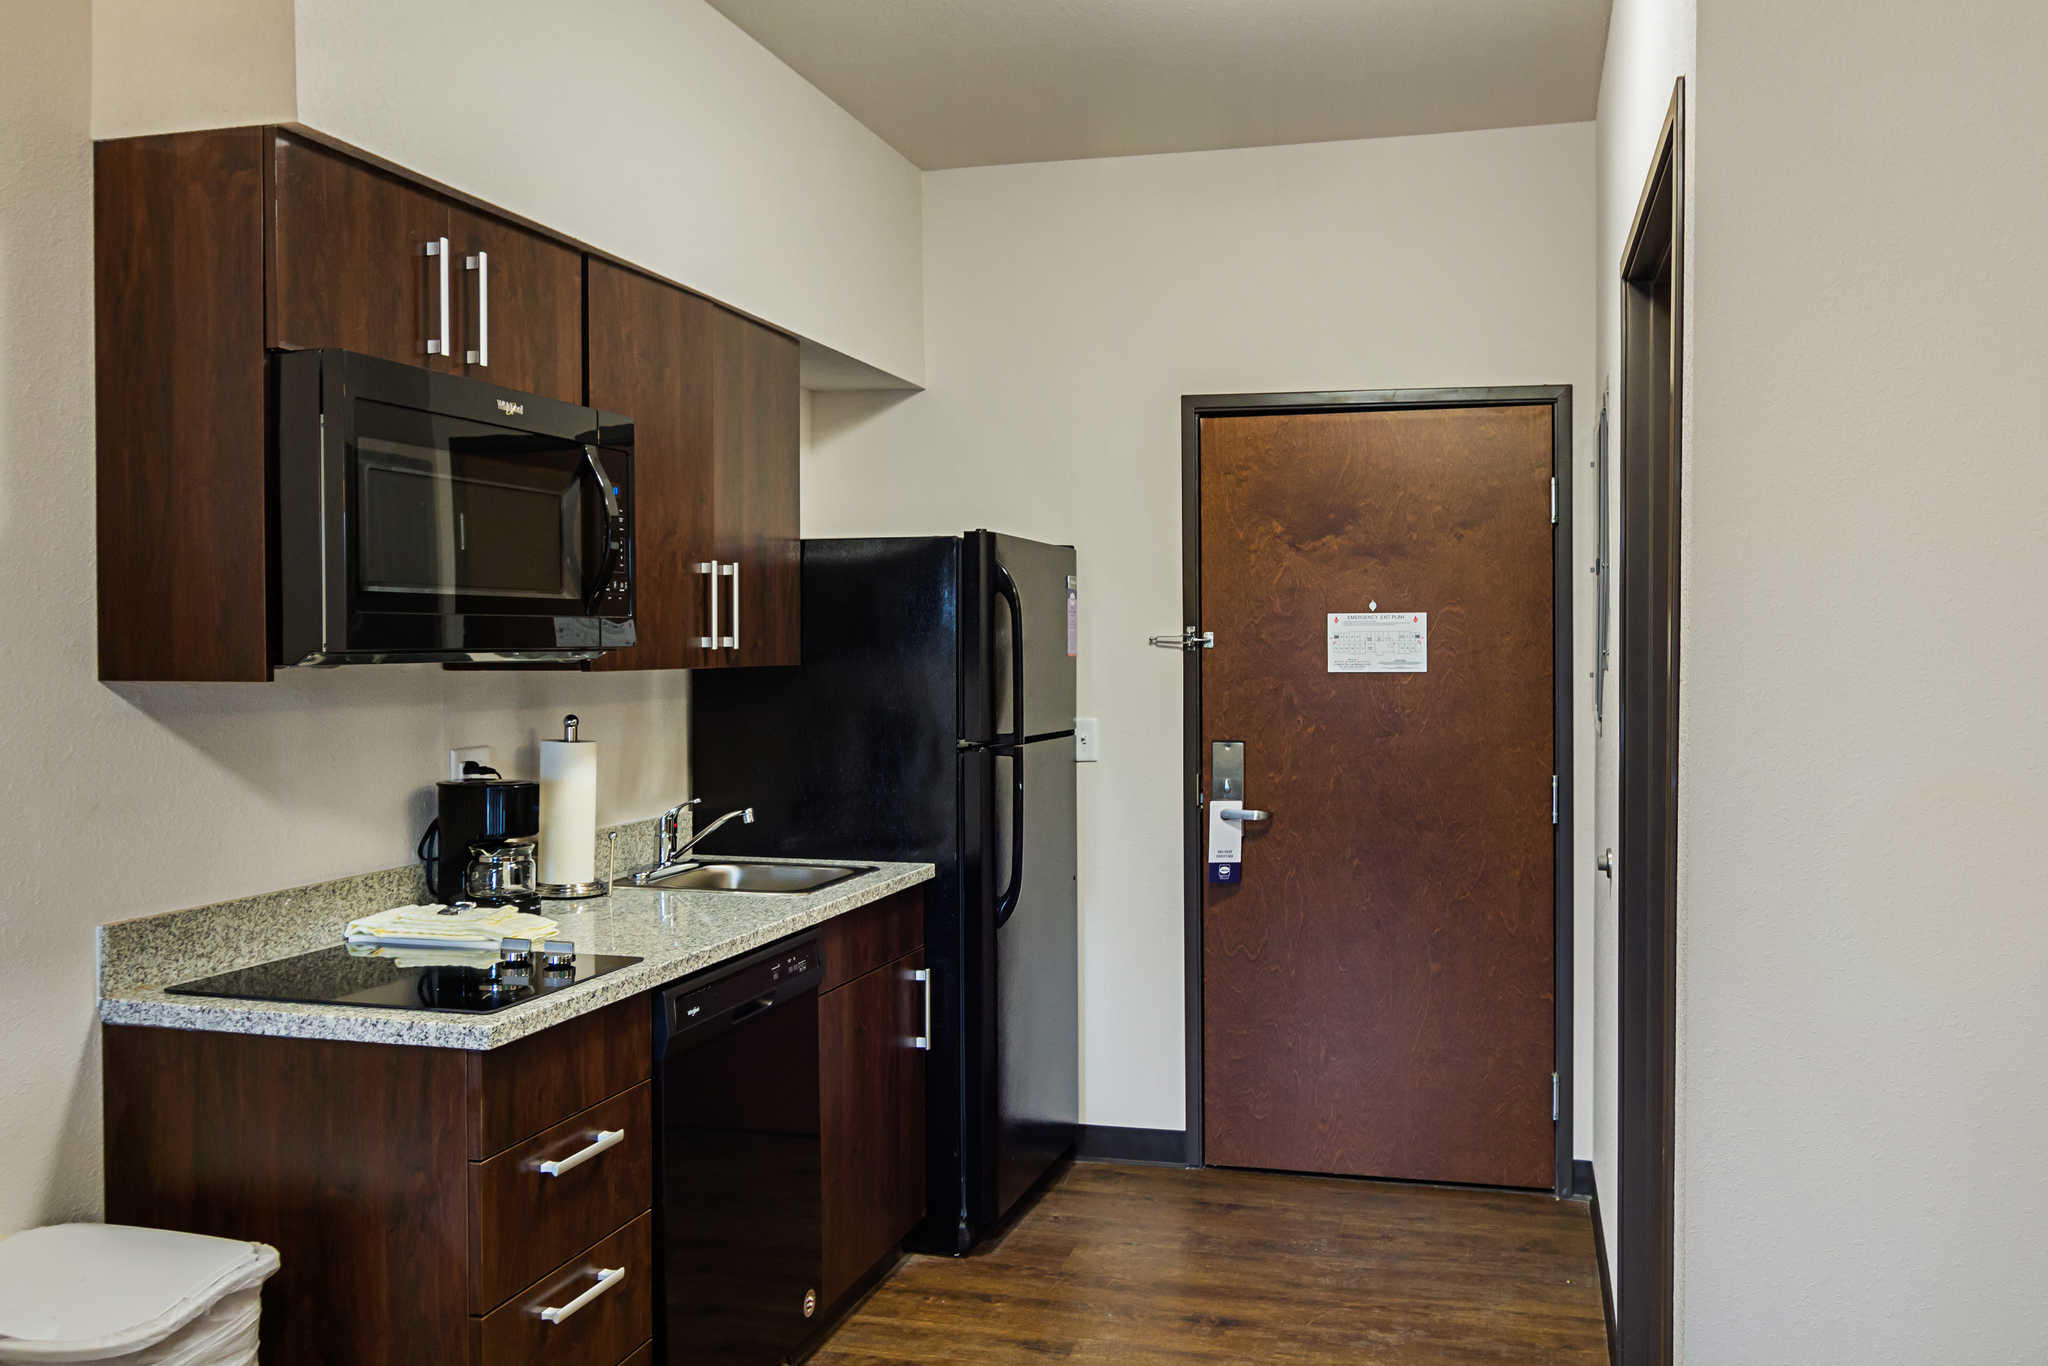 Suburban Extended Stay Hotel image 39